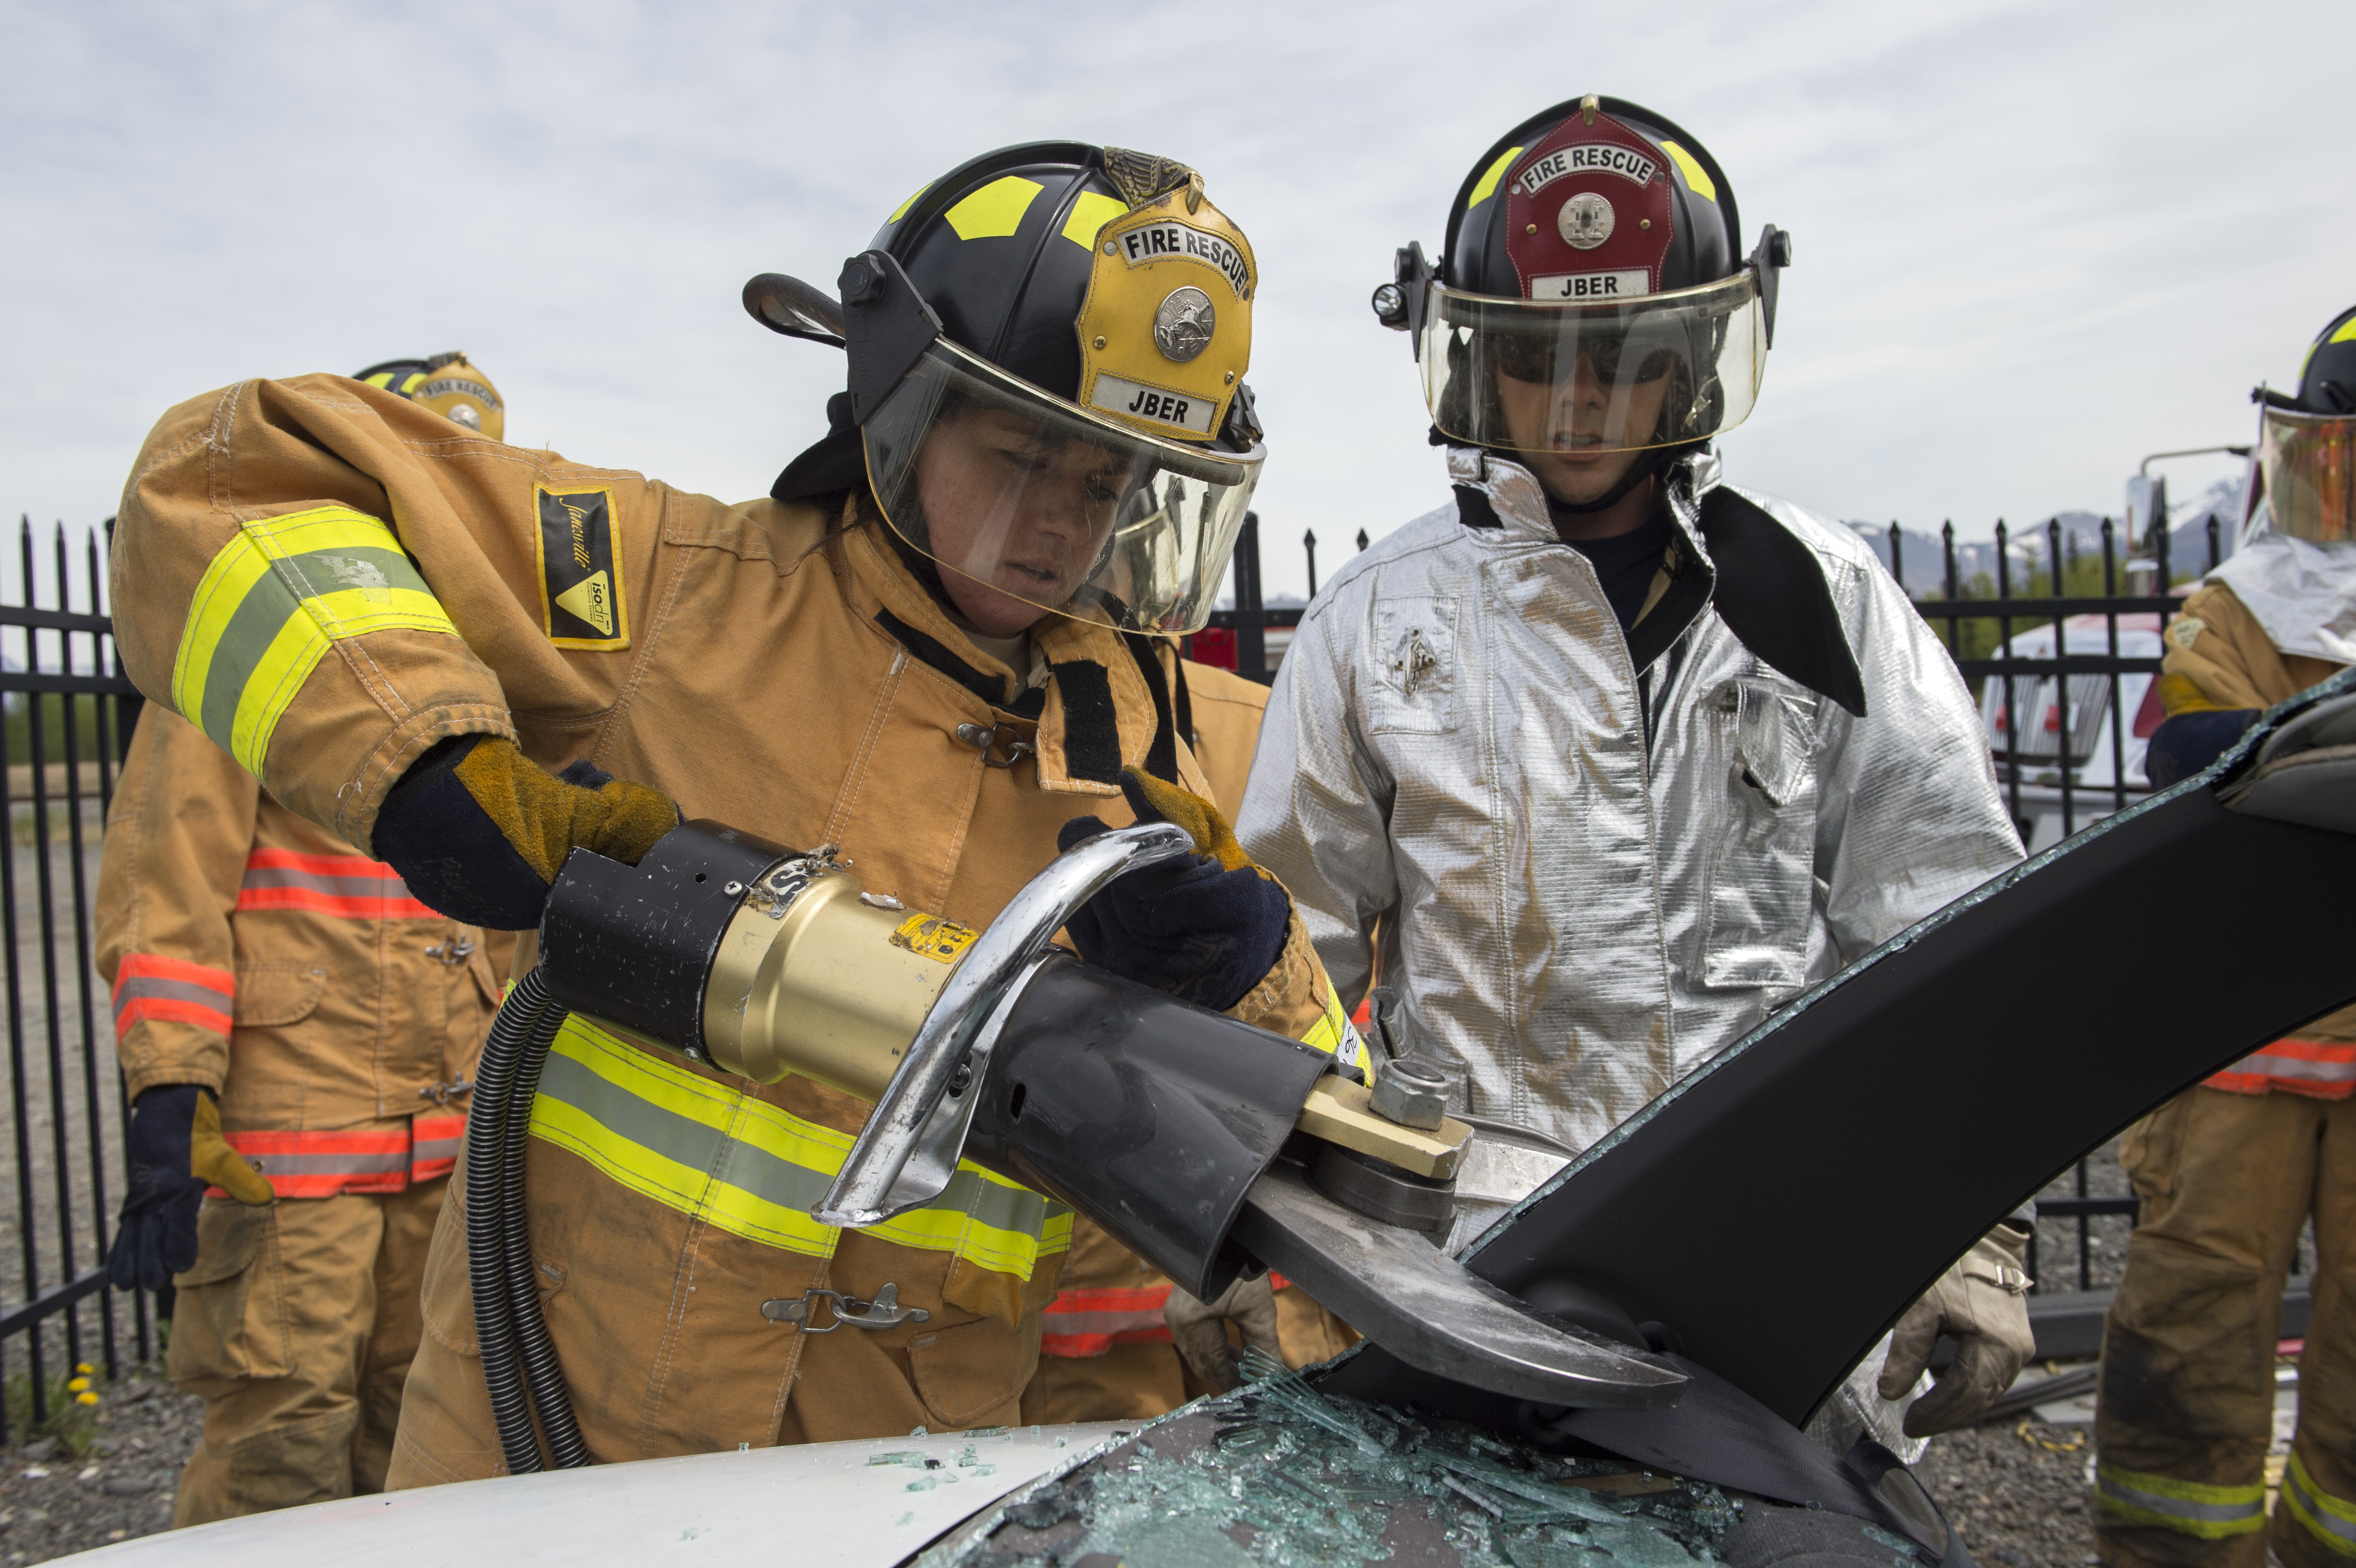 File:JBER firefighters conduct live-fire and rescue training 150520